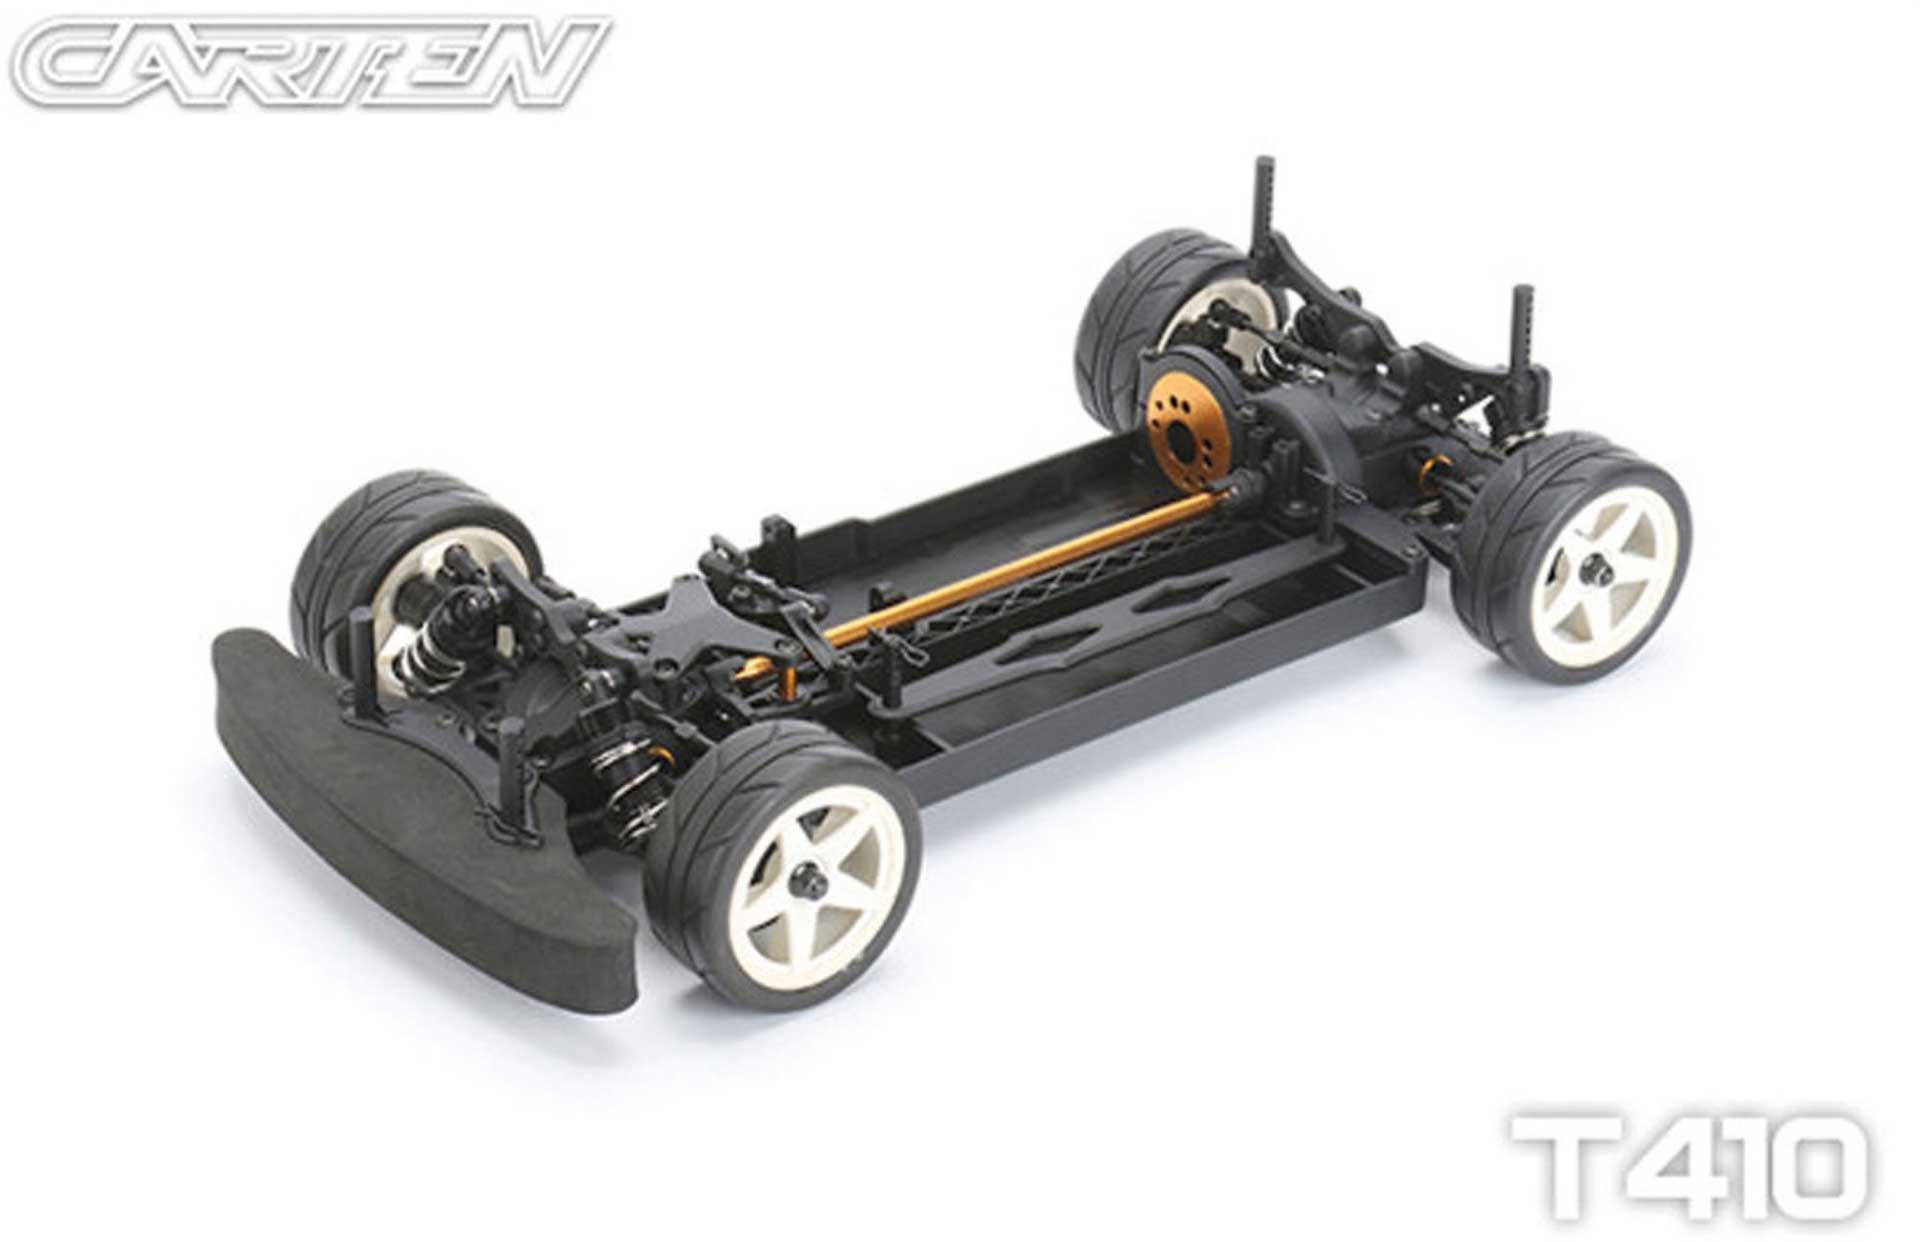 CARTEN T410 1/10 4WD Touring Car ARTR